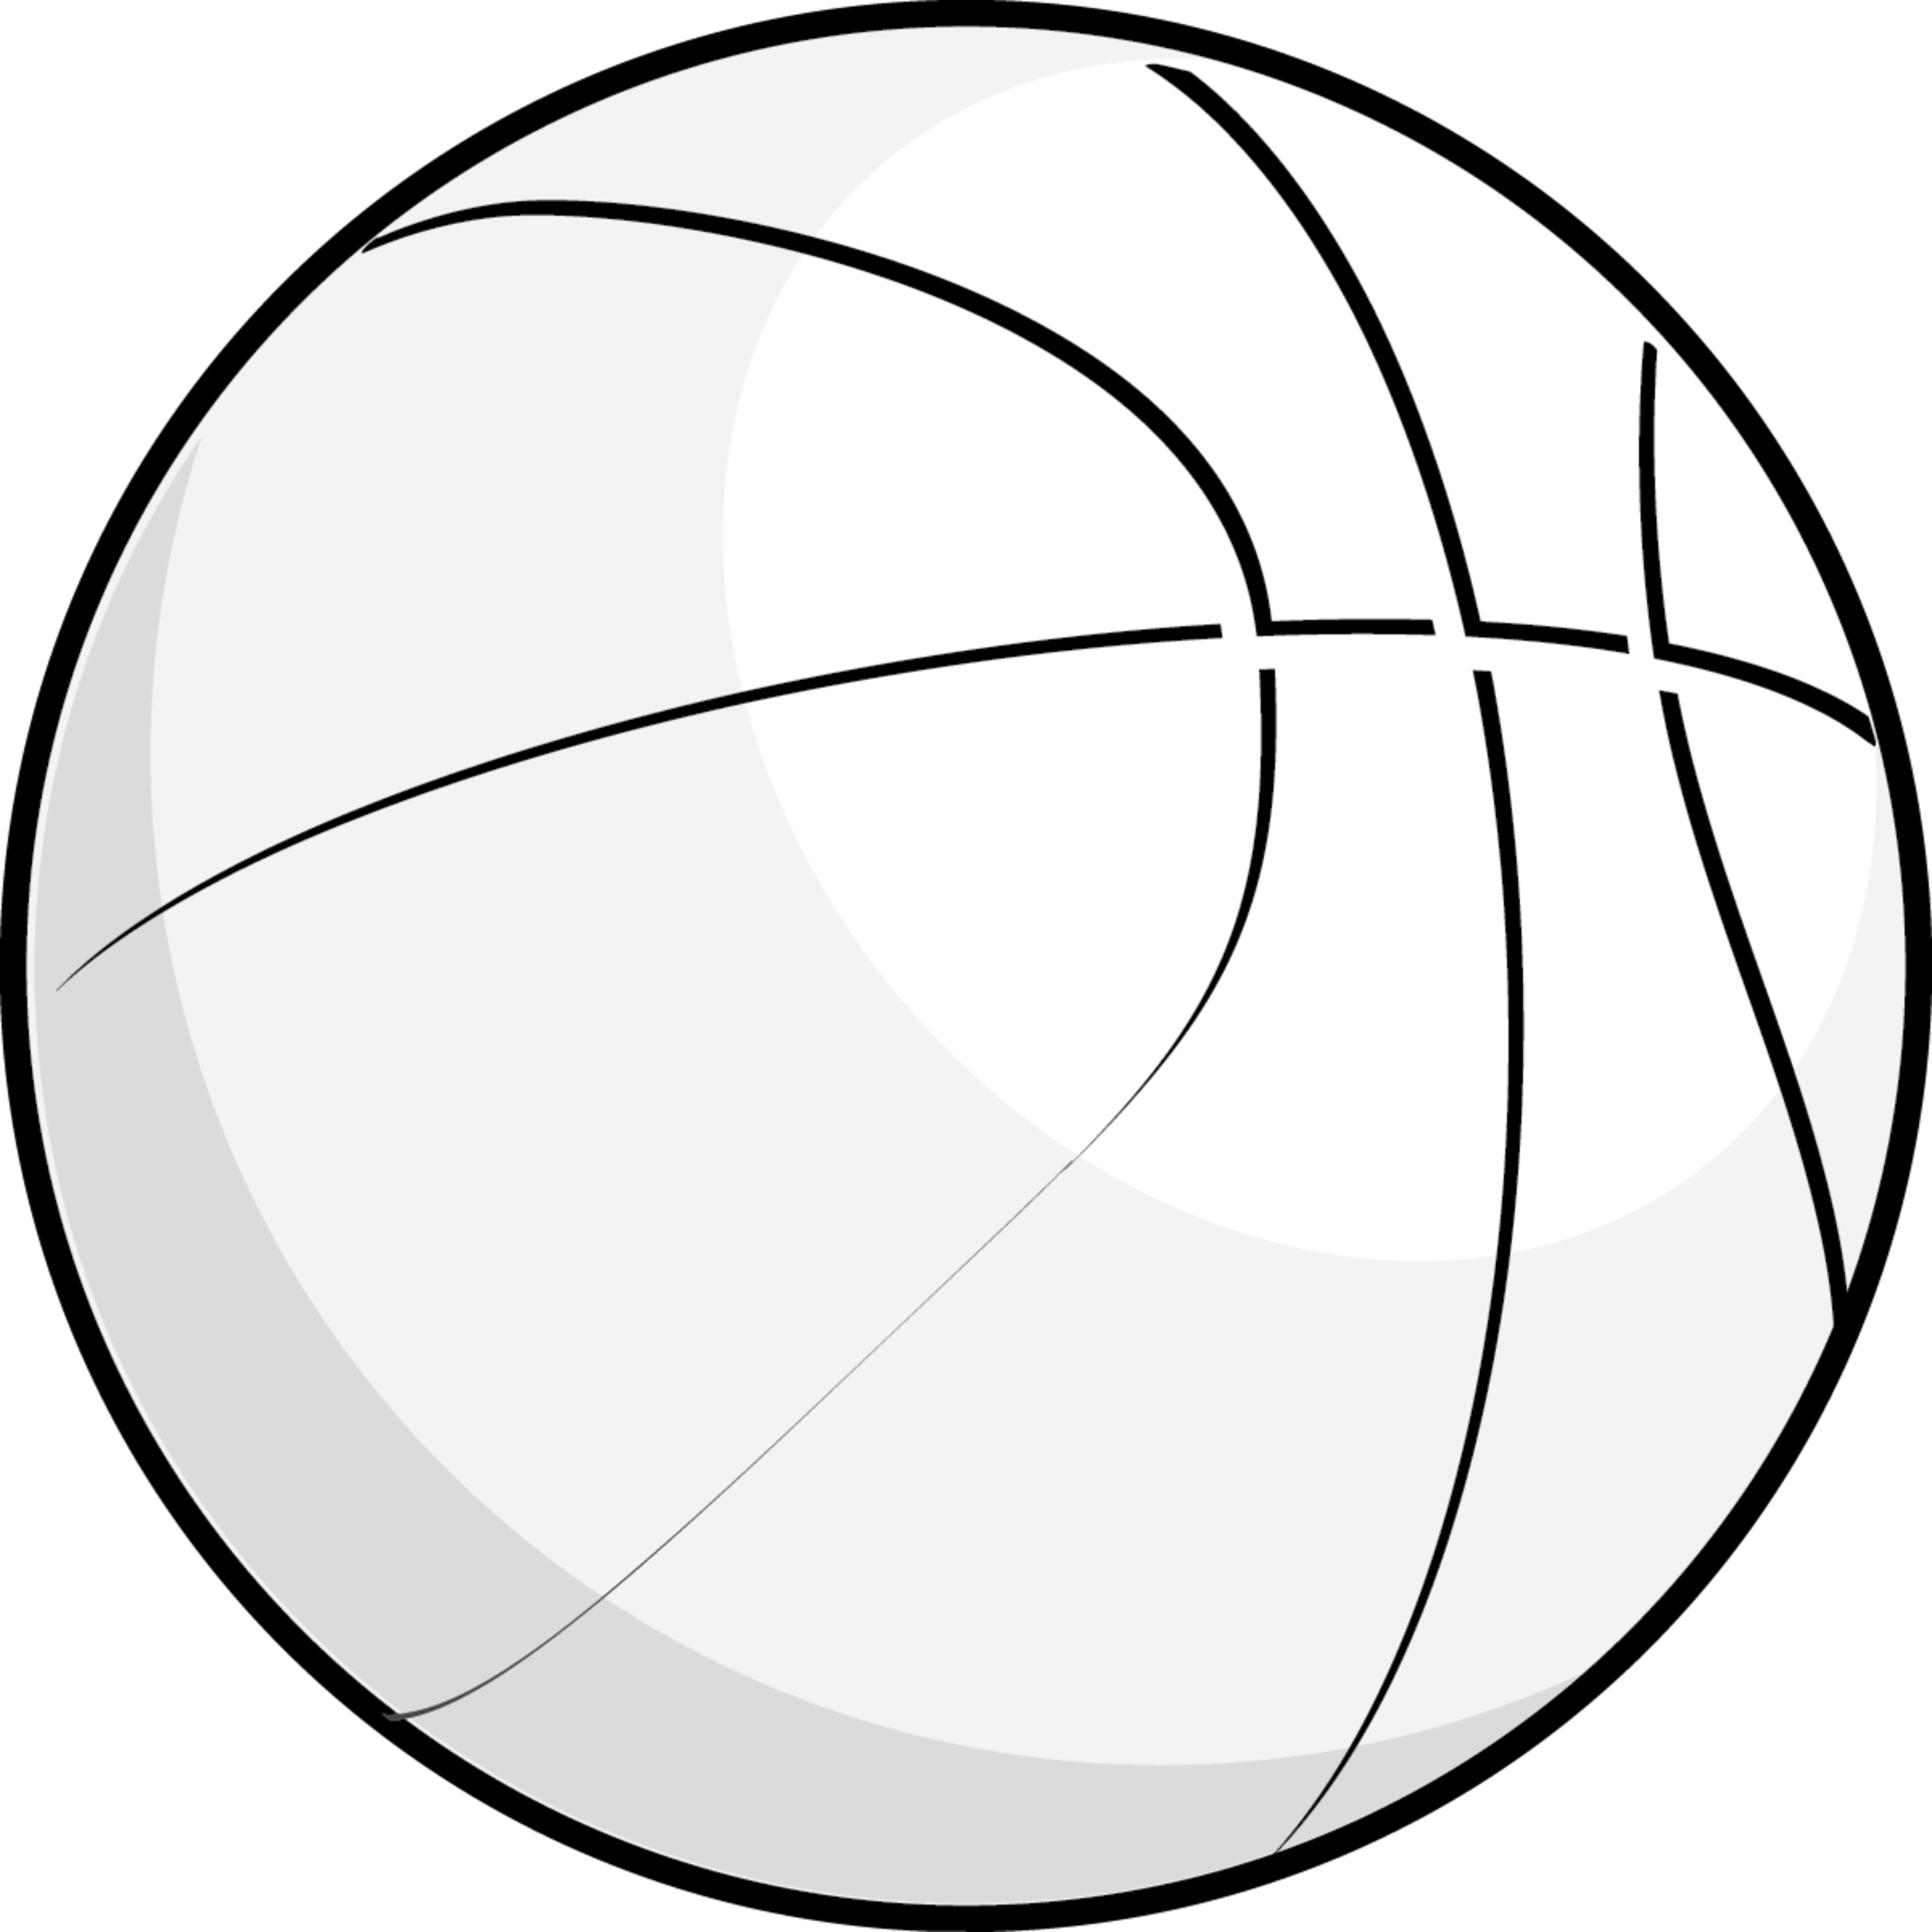 2500x2500 Basketball Black And White House Clipart Black And White 6